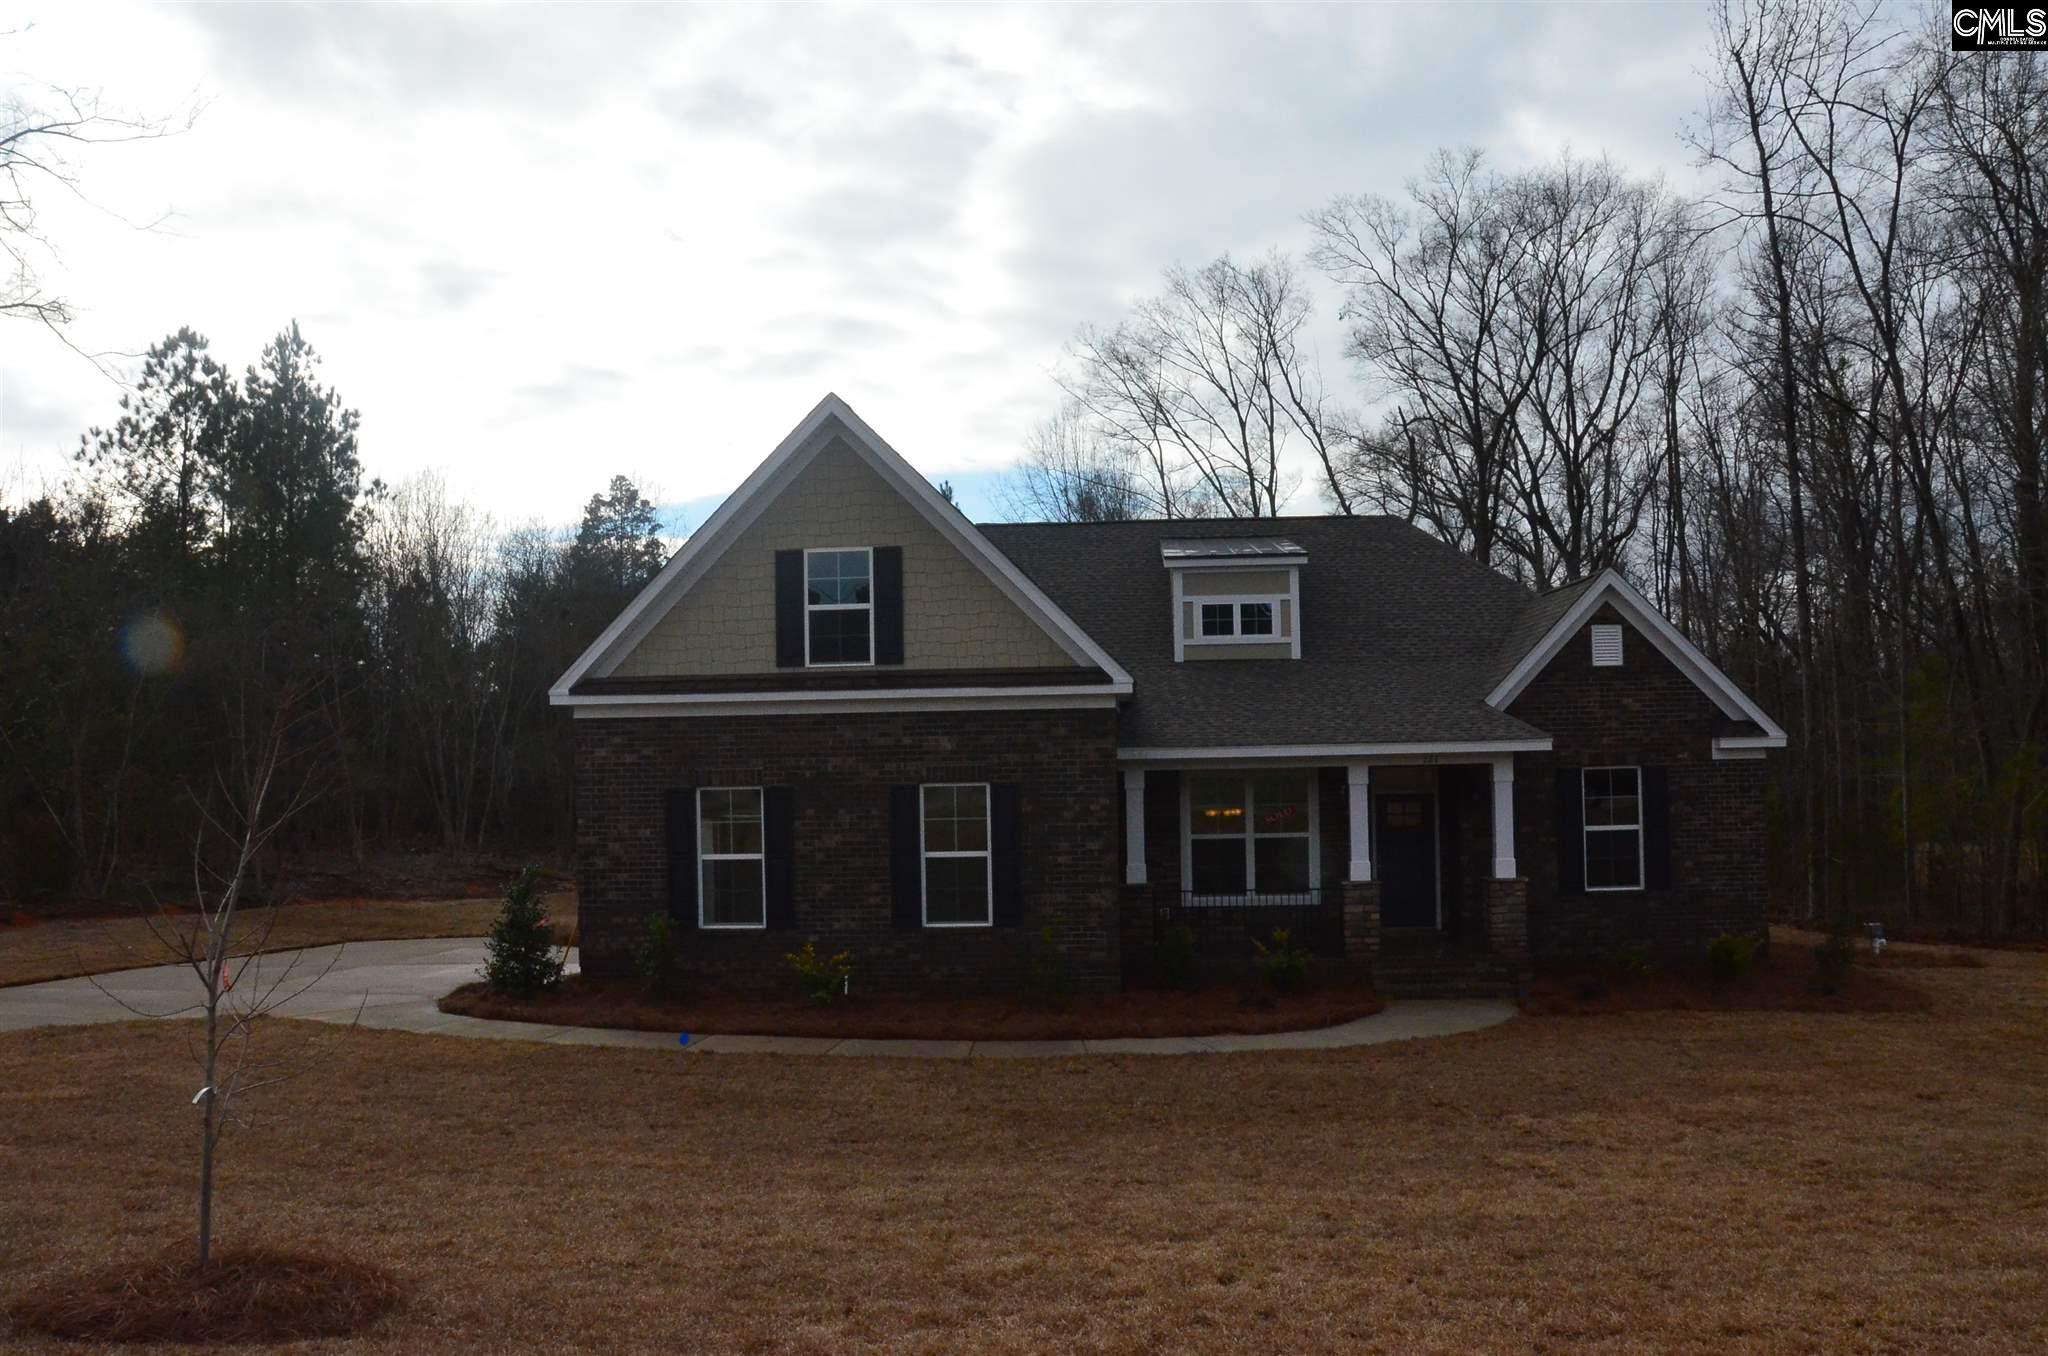 208 St Thomas Church Rd Chapin, SC 29036